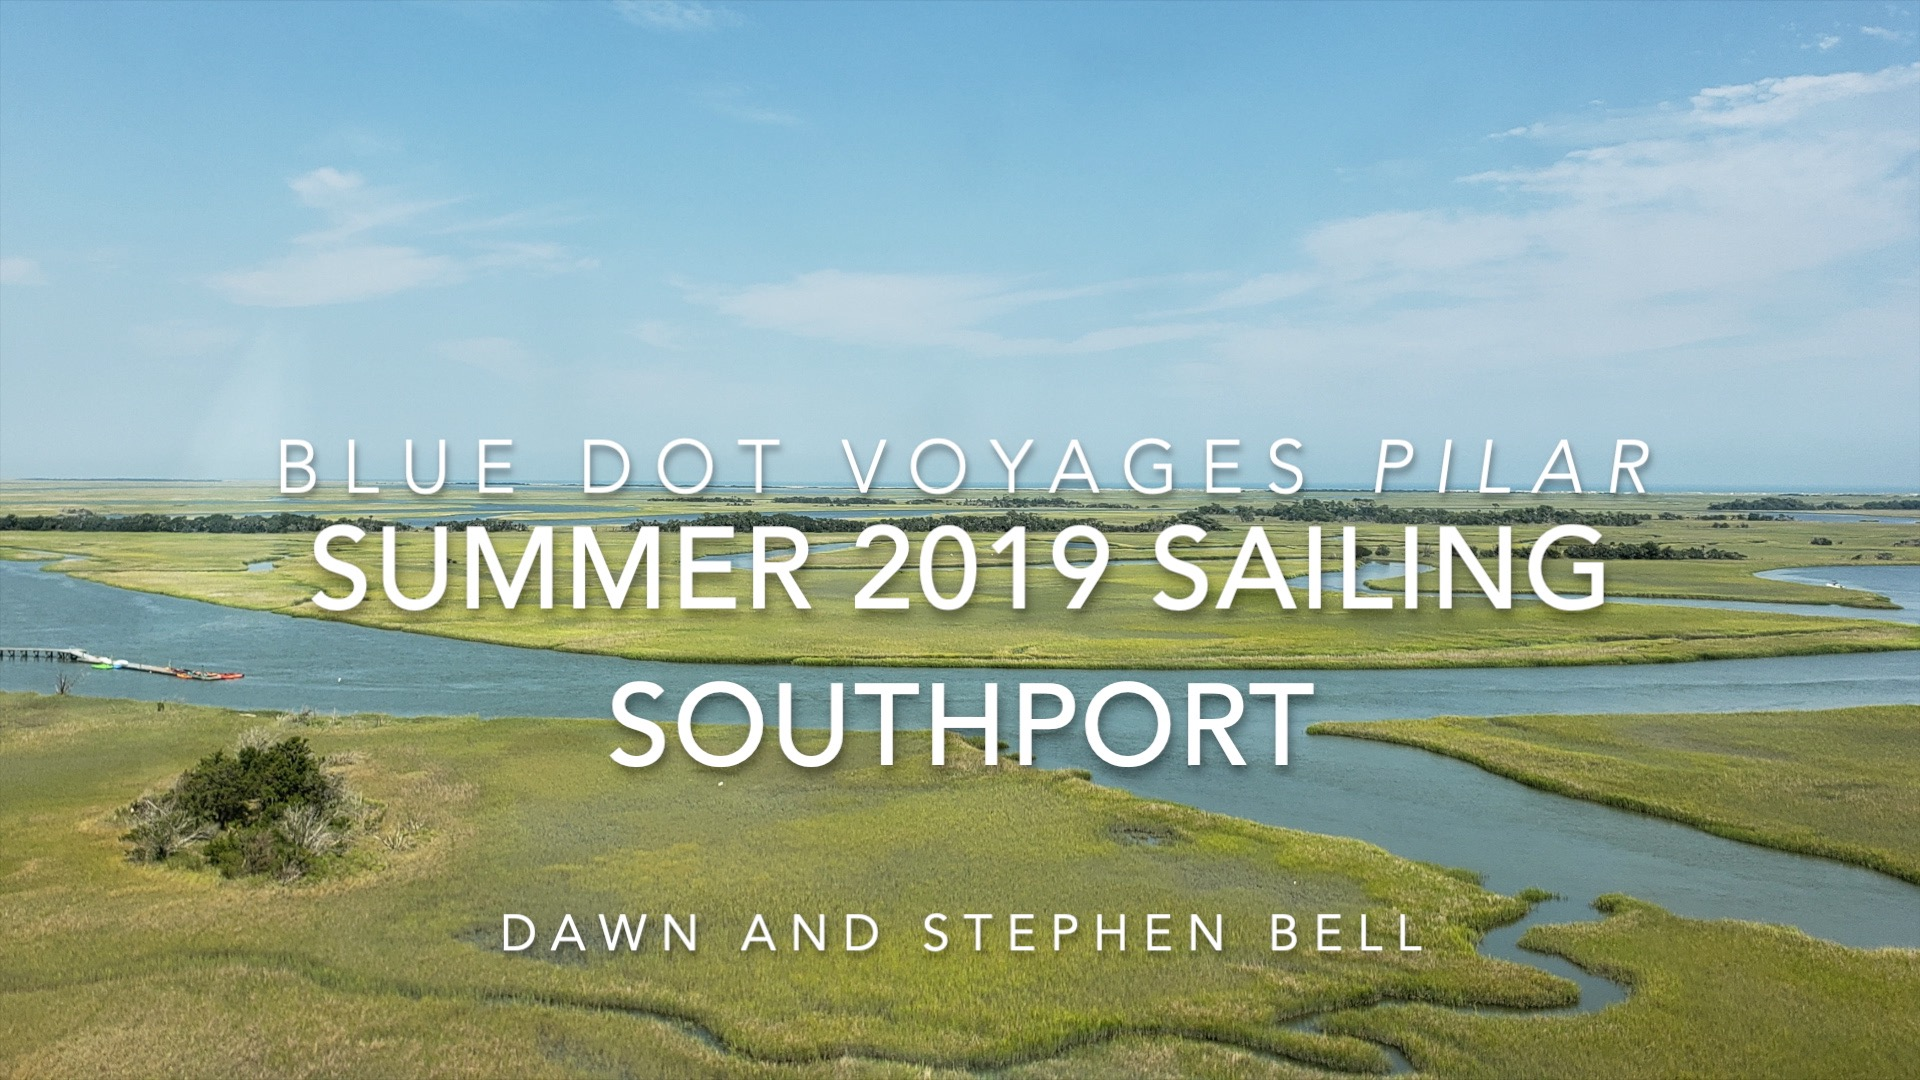 Southport - Oak Island - Bald Head Island NC Sailing & Activities Guide